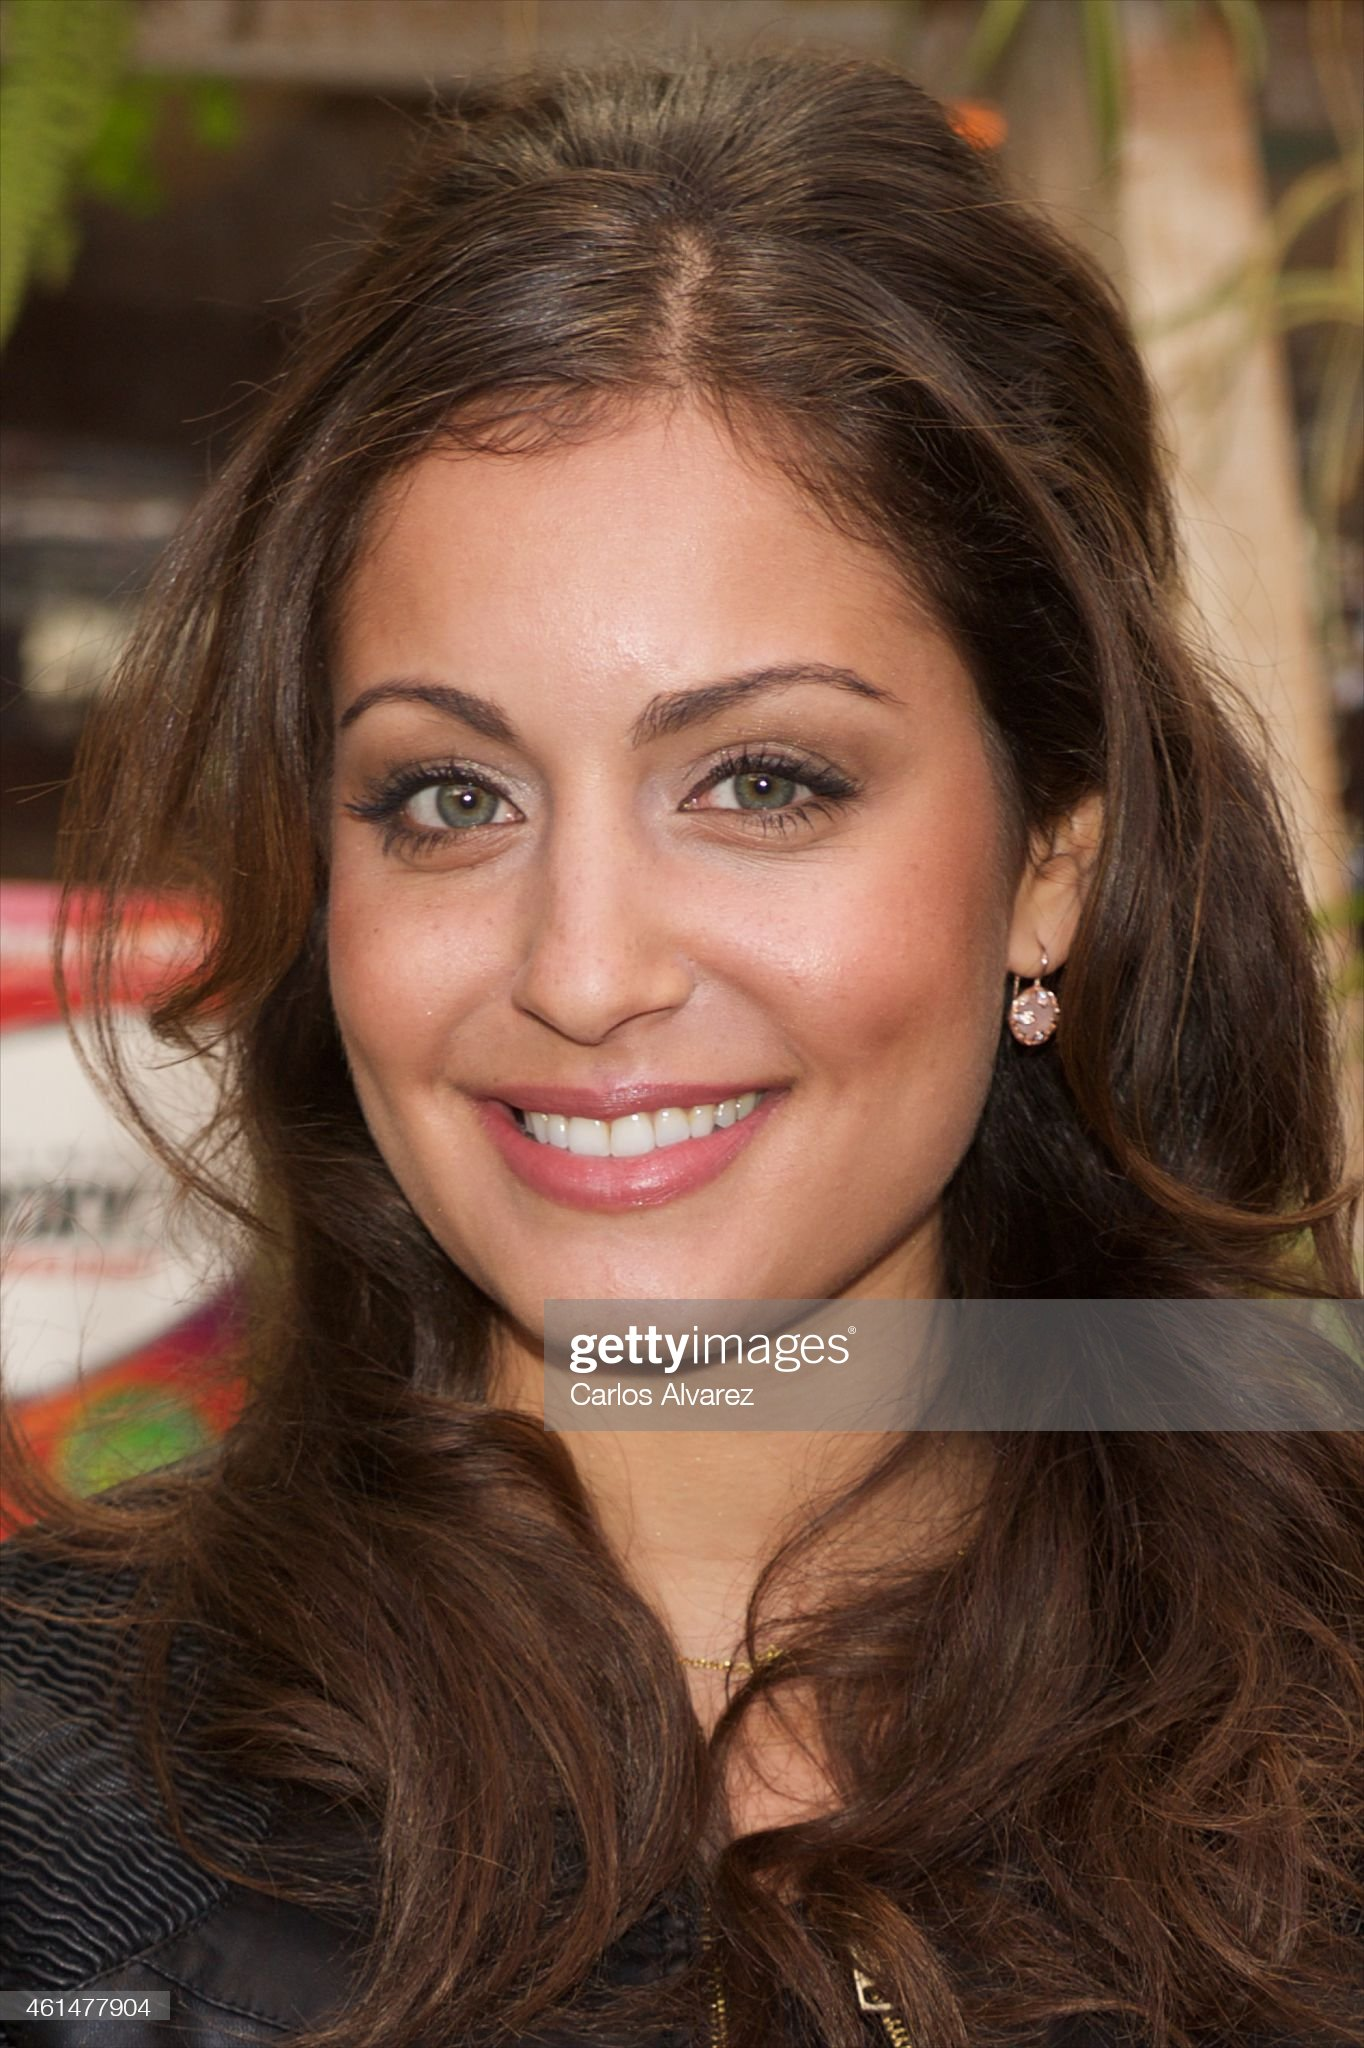 COLOR DE OJOS (clasificación y debate de personas famosas) Spanish-actress-hiba-abouk-presents-the-new-hydroxycut-at-the-san-picture-id461477904?s=2048x2048